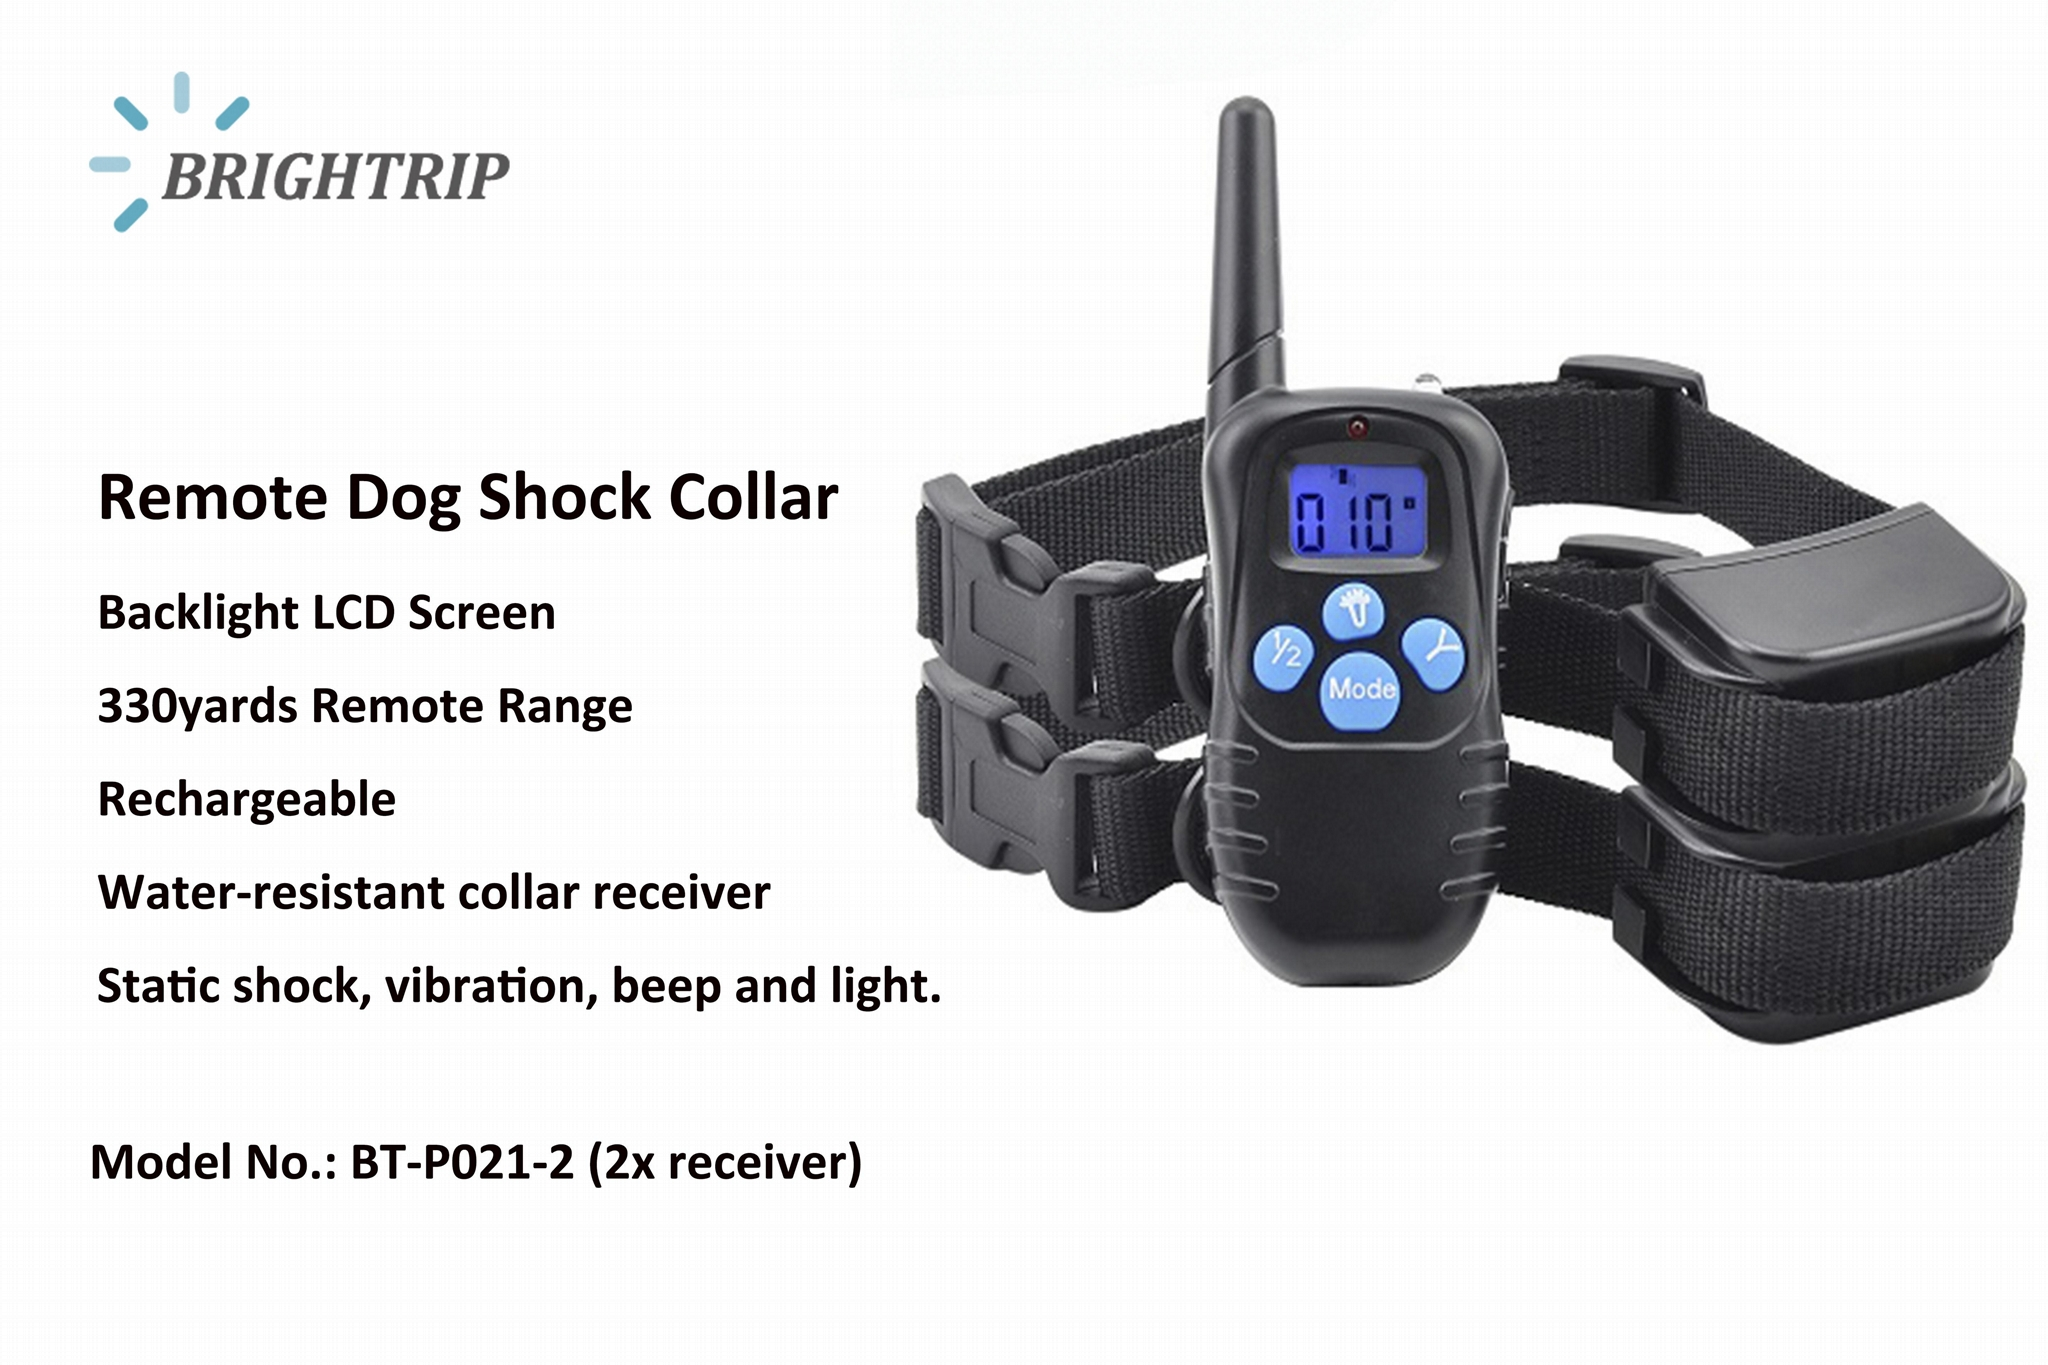 Amazon Best Seller Remote Dog Shock Collar with 2 Collars BT-P021-2 1